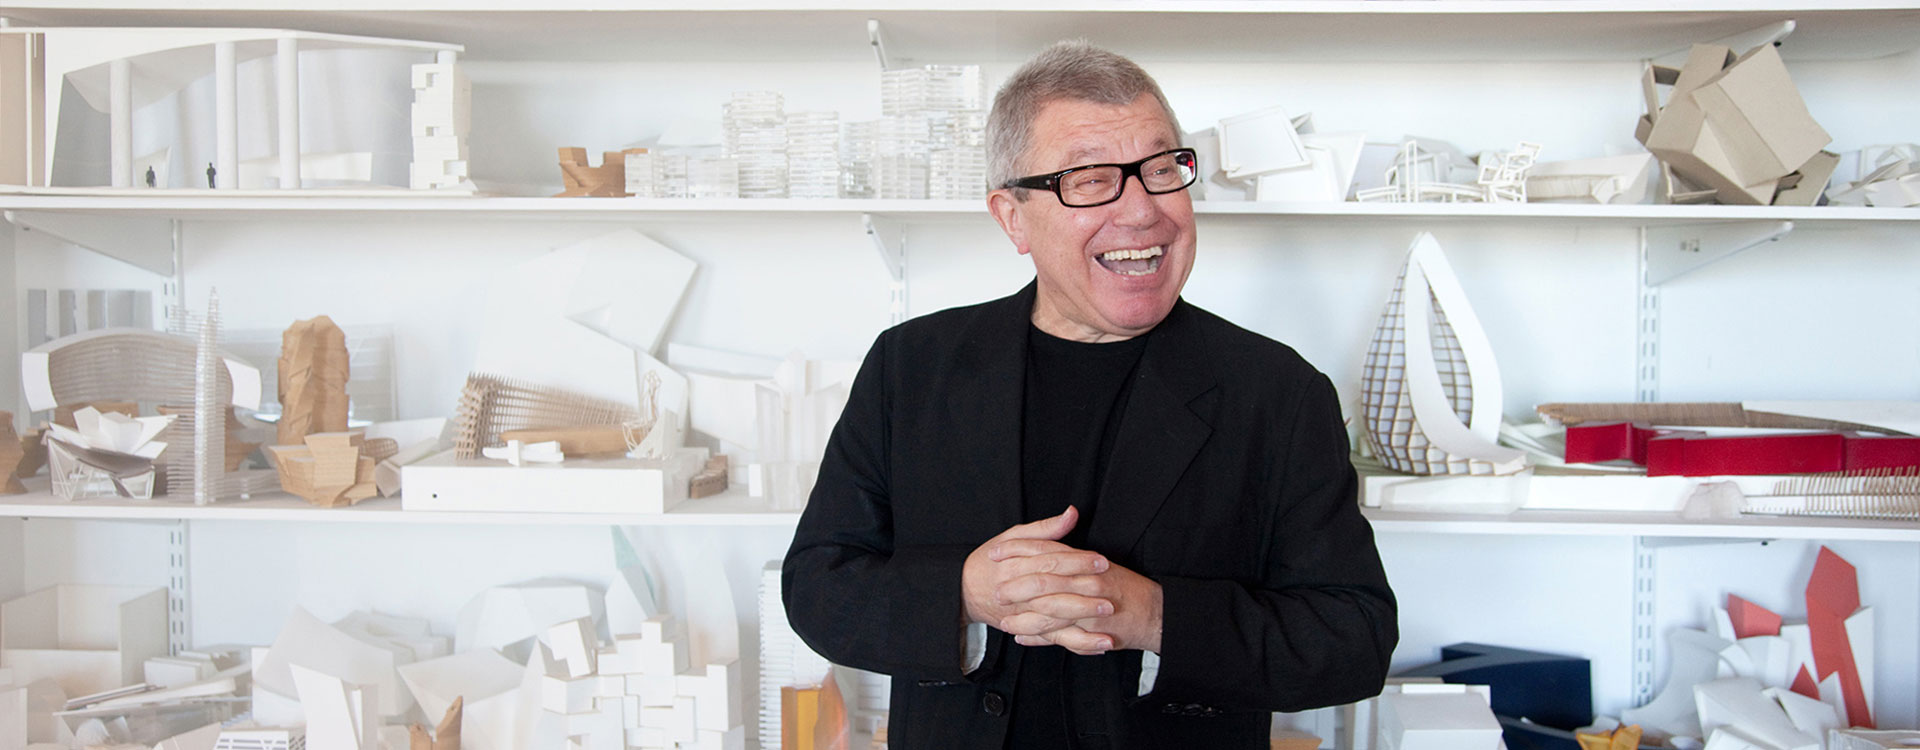 One Day in Life - A Concert Project by Daniel Libeskind and Alte Oper Frankfurt